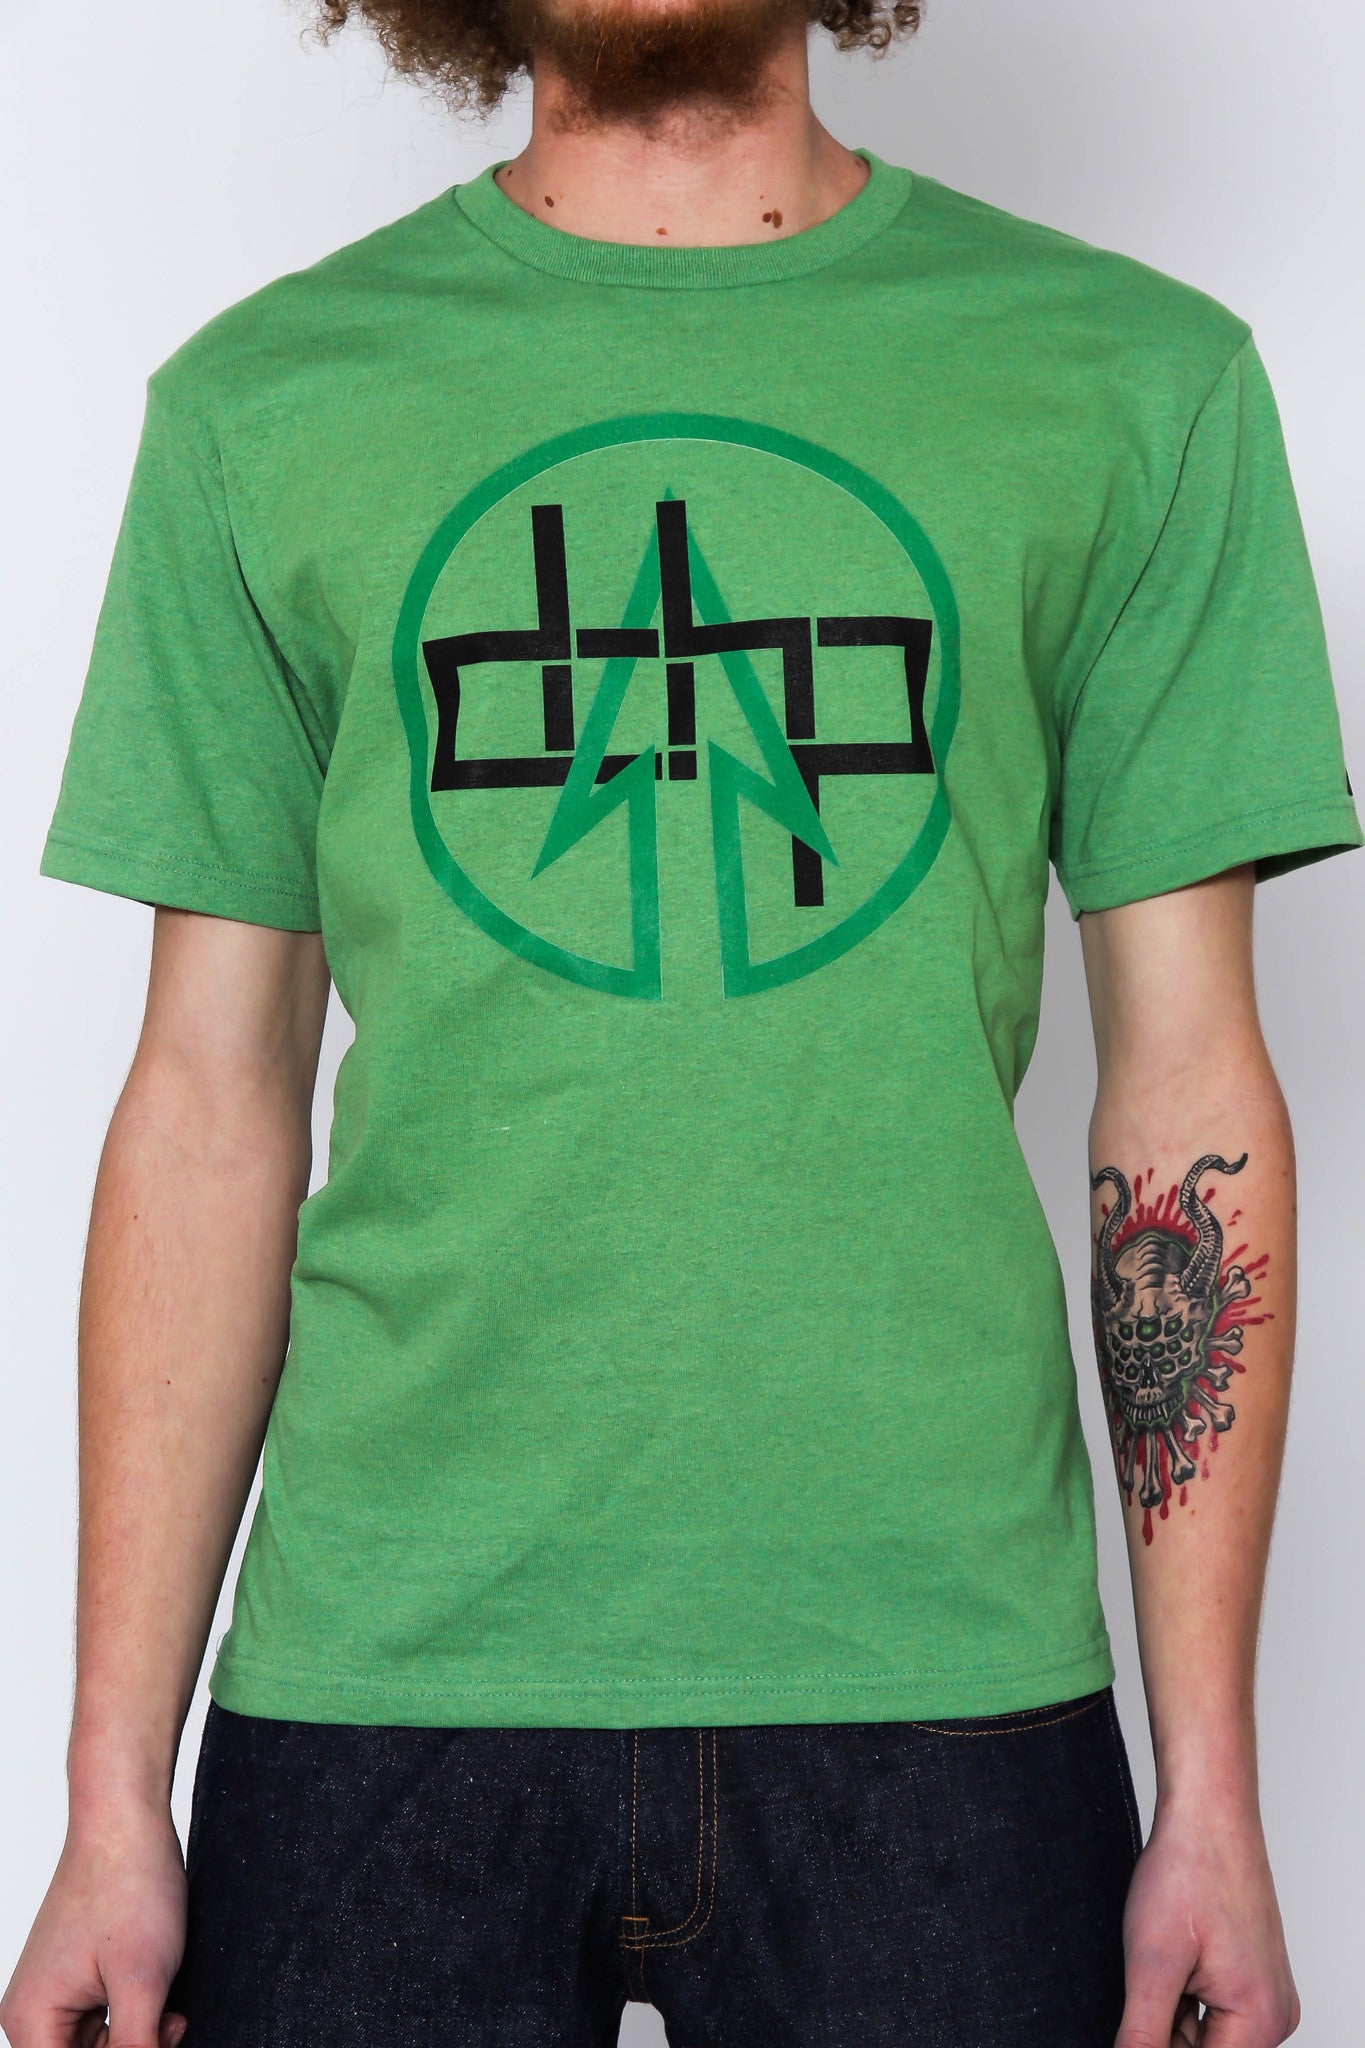 The SPECIAL EDITION GREEN / Extra Small Homage to Green Arrow Tree-Shirt (New!): one of the Tree-Shirts by DOHP, get it now from the Decorate Our Home Planet Store! We plant 3 Trees for every item sold! - 1